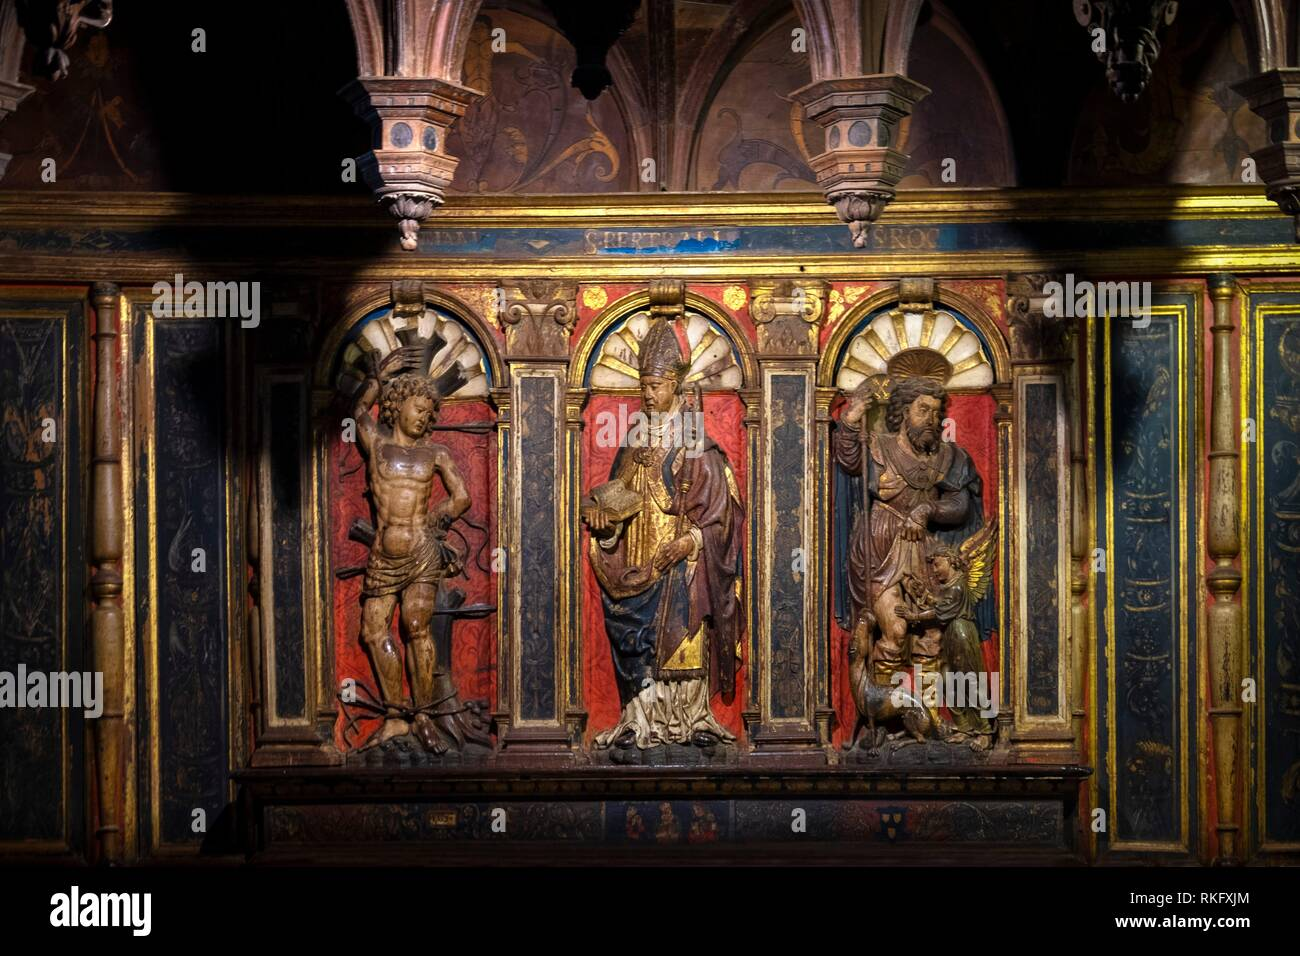 France, Occitanie, Haute Garonne, Detail of the Jube of the Choir, Renaissance style, at the Sainte Marie cathedrale, at Saint Bertrand de Comminges. - Stock Image